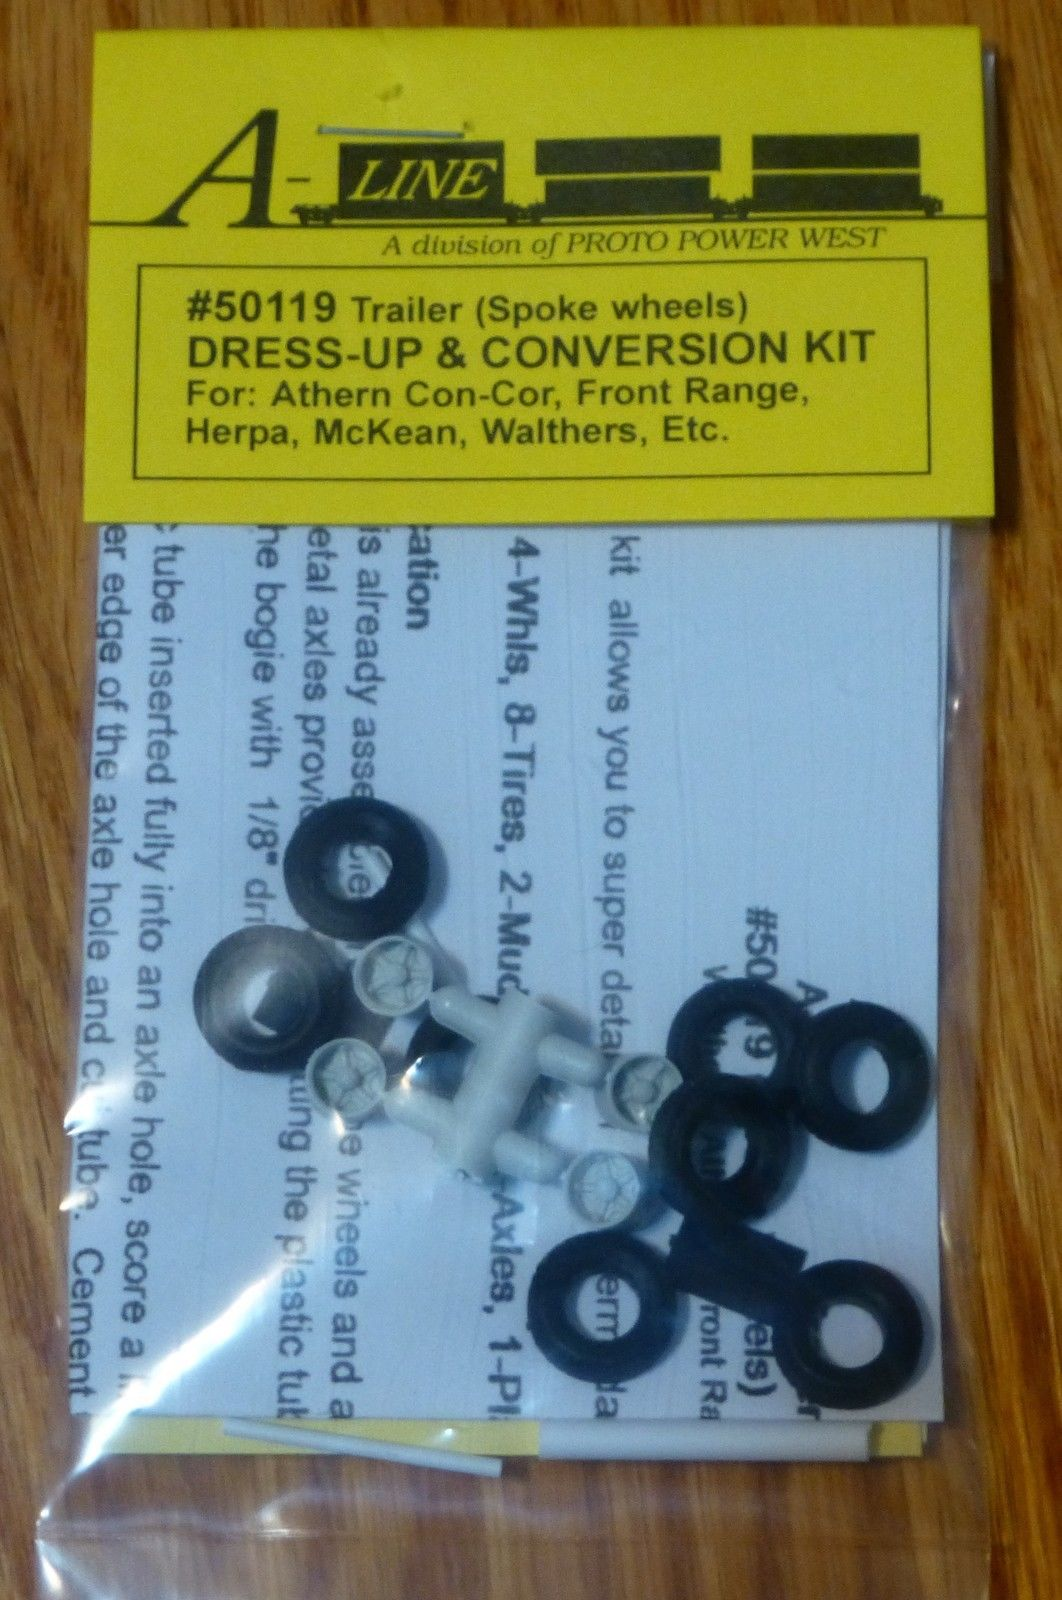 A-Line 50119 HO Dress-up Kit with Spoke Wheels (8) This is an A-Line 50119 HO Scale Dress-up Kit with Spoke Wheels (8). This kit allows you to super detail an HO intermodal trailer with a minimum of effort. (for Walthers - Athearn - Front Range- Herpa- McKean-Con Cor etc.). Kit includes: 4-wheels, 8-Tires, 2-Mud Flaps, 2-Axles,1-Adapter Tube, 1-Mud flap brkt.Condition: Part (N/ATrainz does not provide grading for parts.Standards for all toy train related accessory items apply to the visual appearance of the item and do not consider the operating functionality of the equipment.Condition and Grading Standards are subjective, at best, and are intended to act as a guide. )Operational Status: FunctionalThis part is in workable condition.Original Box: NoManufacturer: A-LineModel Number: 50119Category 1: PartsCategory 2: HO ScaleAvailability: Ships in 3 to 5 Business Days.We are unable to provide parts lookup service or fitment assistance.The Trainz SKU for this item is P11953924. Track: 11953924 - FS - 001 - TrainzAuctionGroup00UNK - TDIDUNK